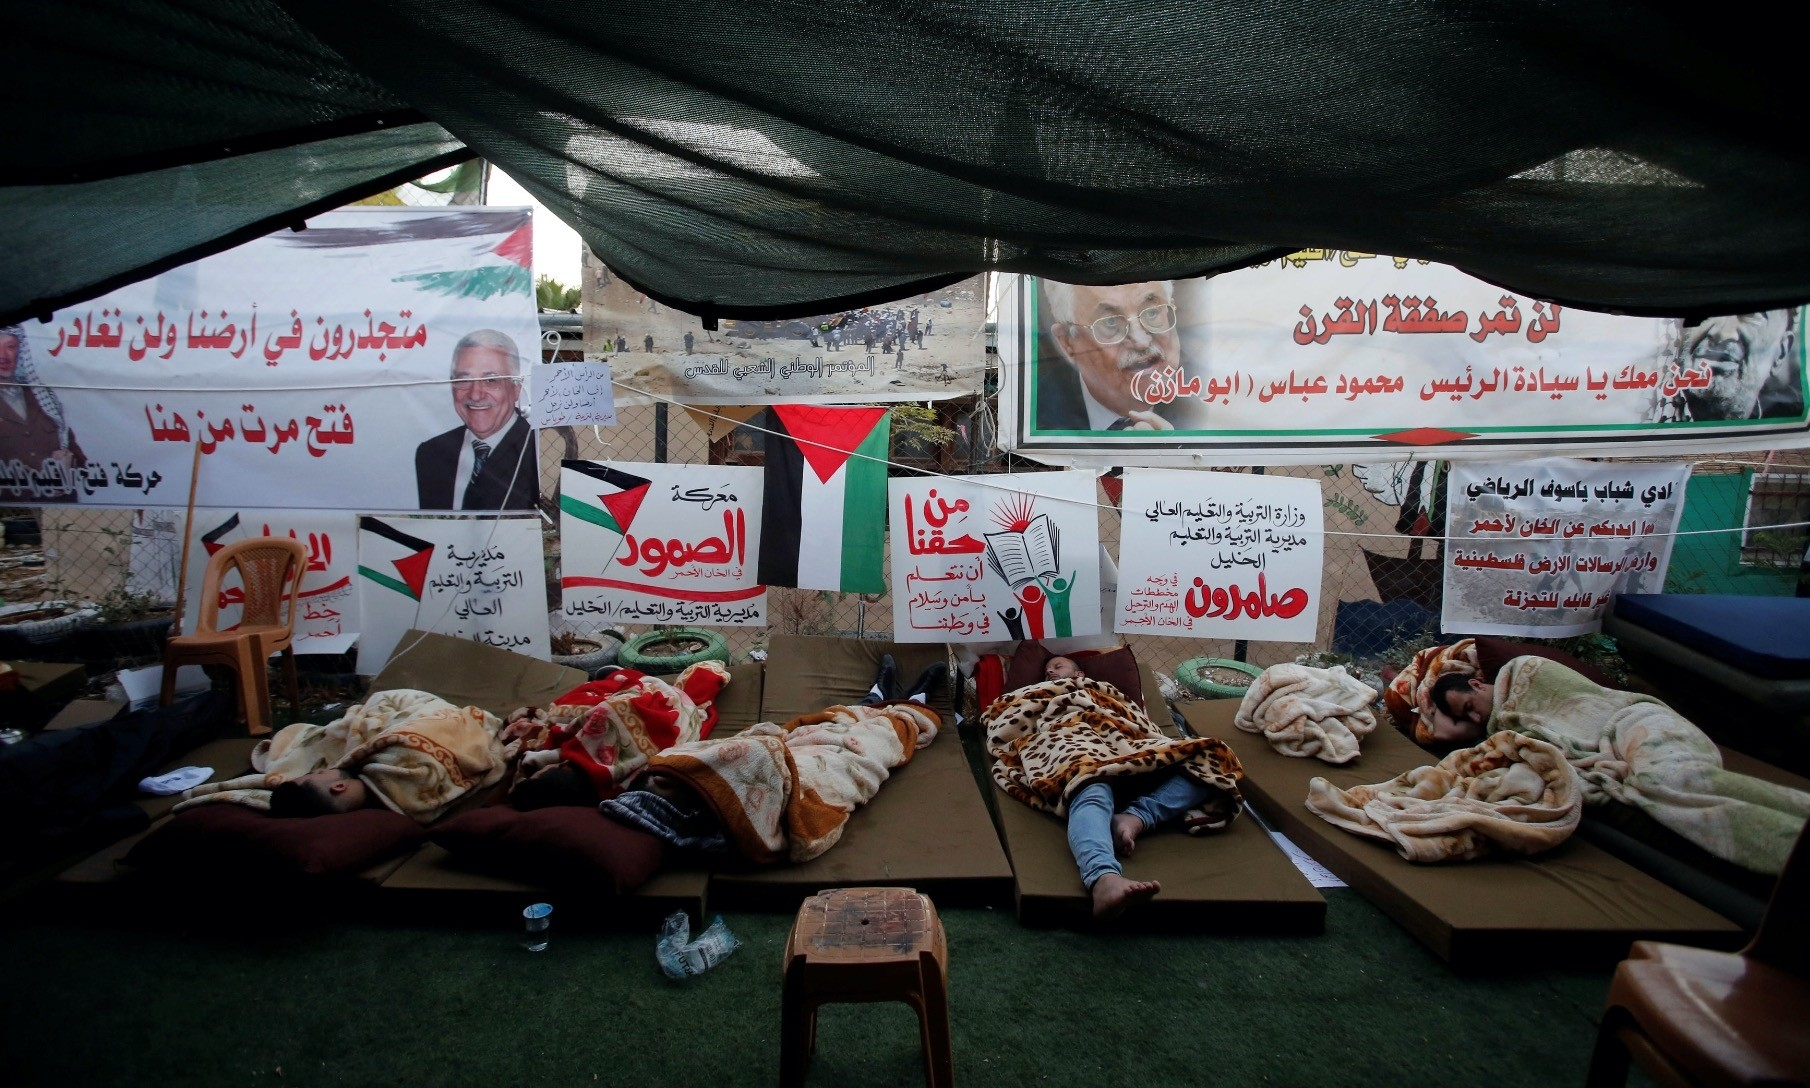 Activists protesting against Israelu2019s plan to demolish the Palestinian Bedouin village of Khan al-Ahmar, sleep in a tent in Khan al-Ahmar, in the occupied West Bank, Sept. 16.